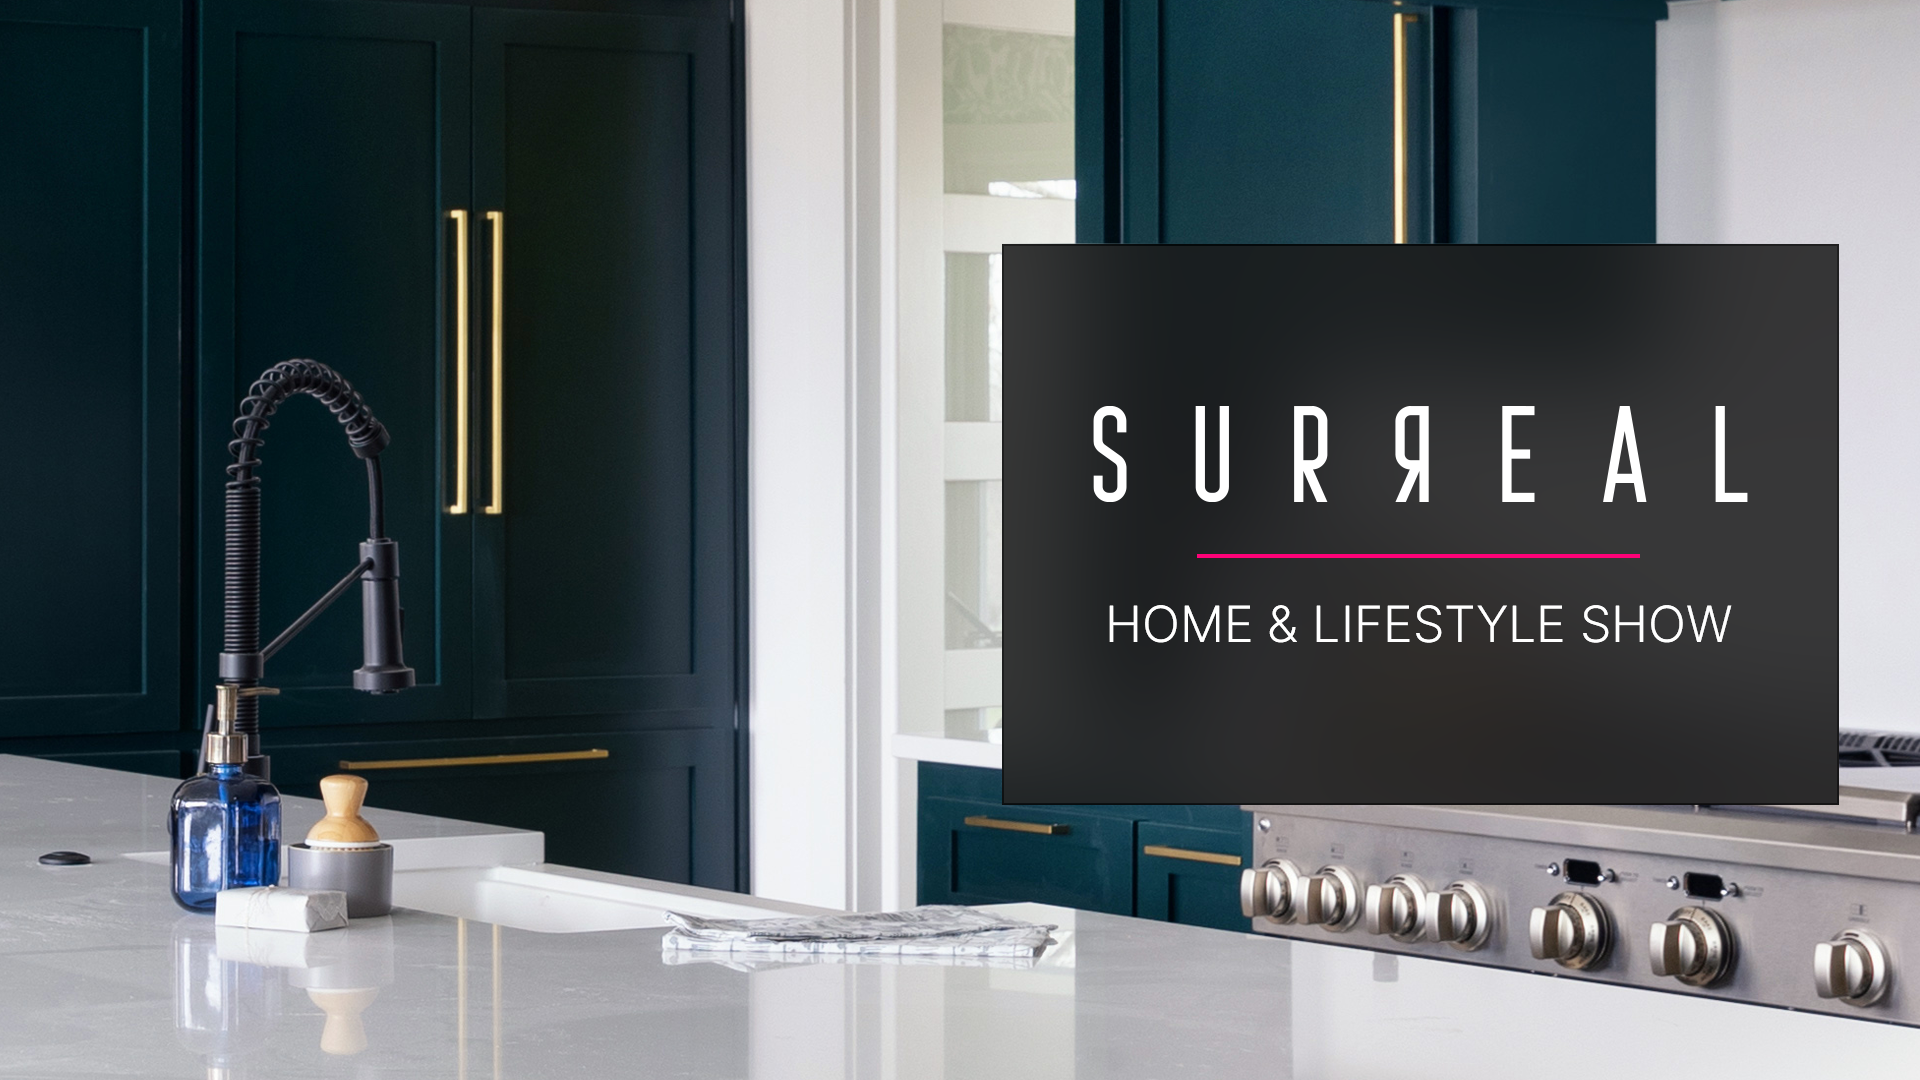 Surreal Home & Lifestyle Show